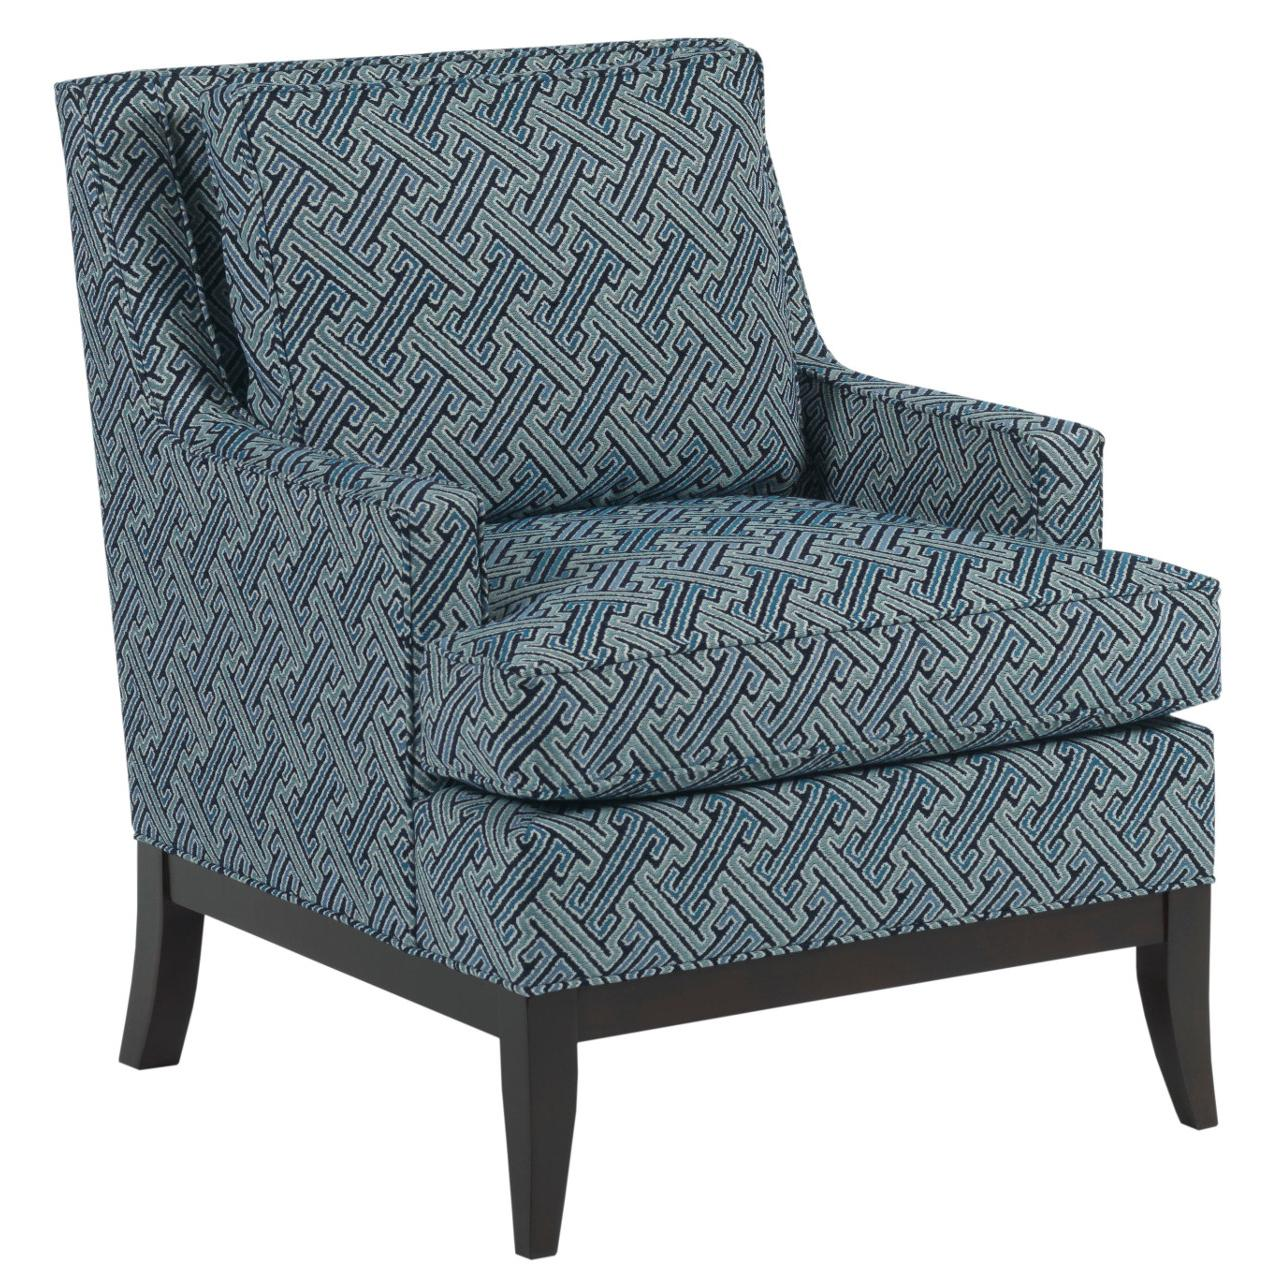 Kincaid Furniture Accent Chairs Park Avenue Chair with Exposed Wood Base and Track Arms - Hudson ...